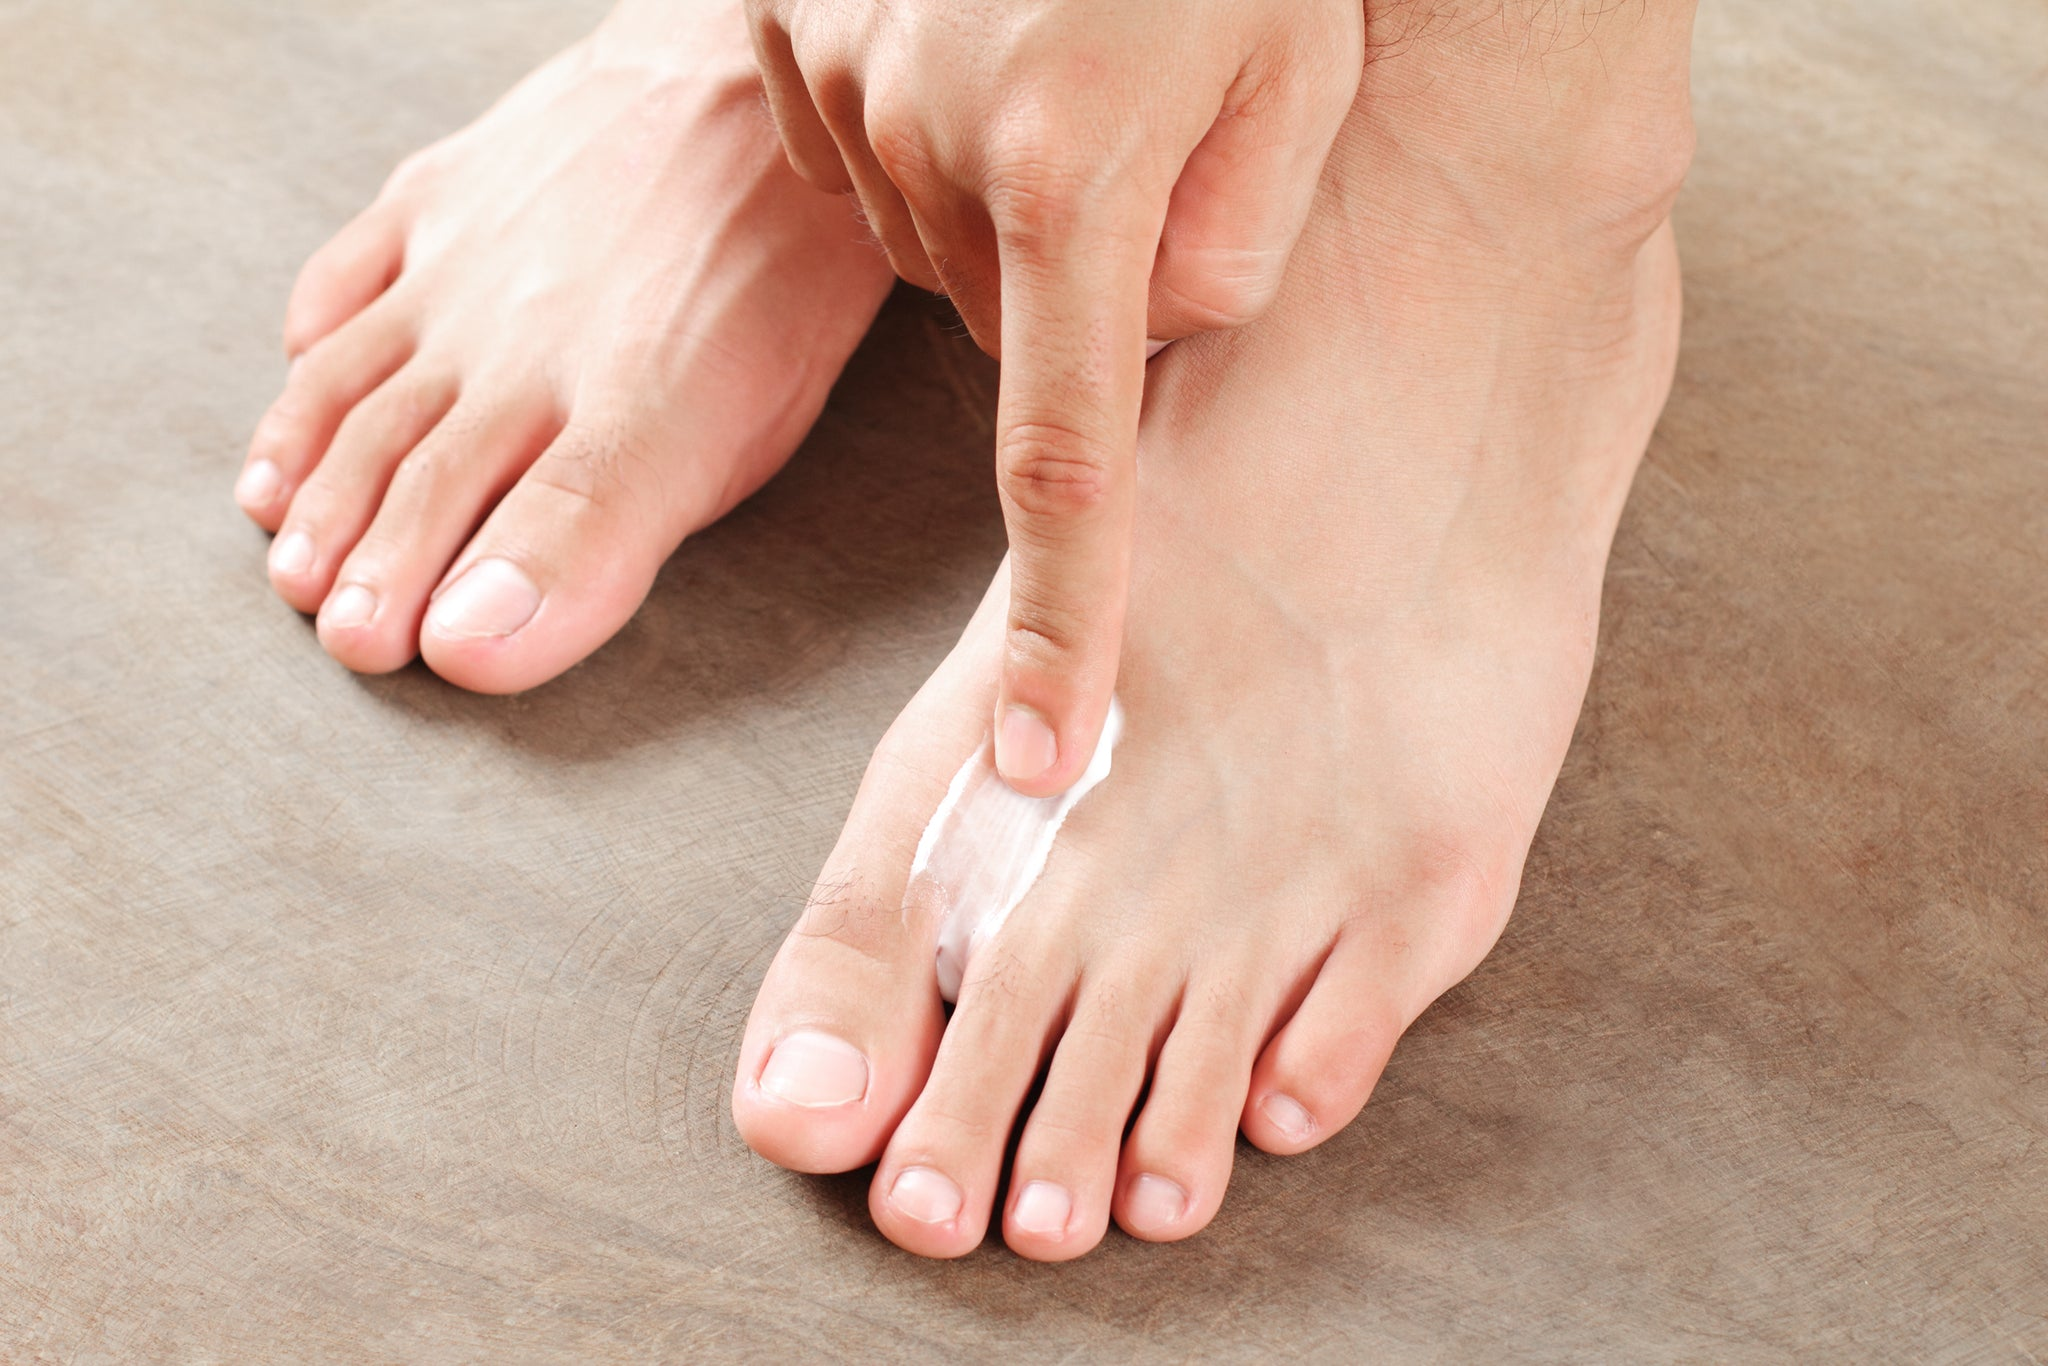 Athlete's Foot Treatments